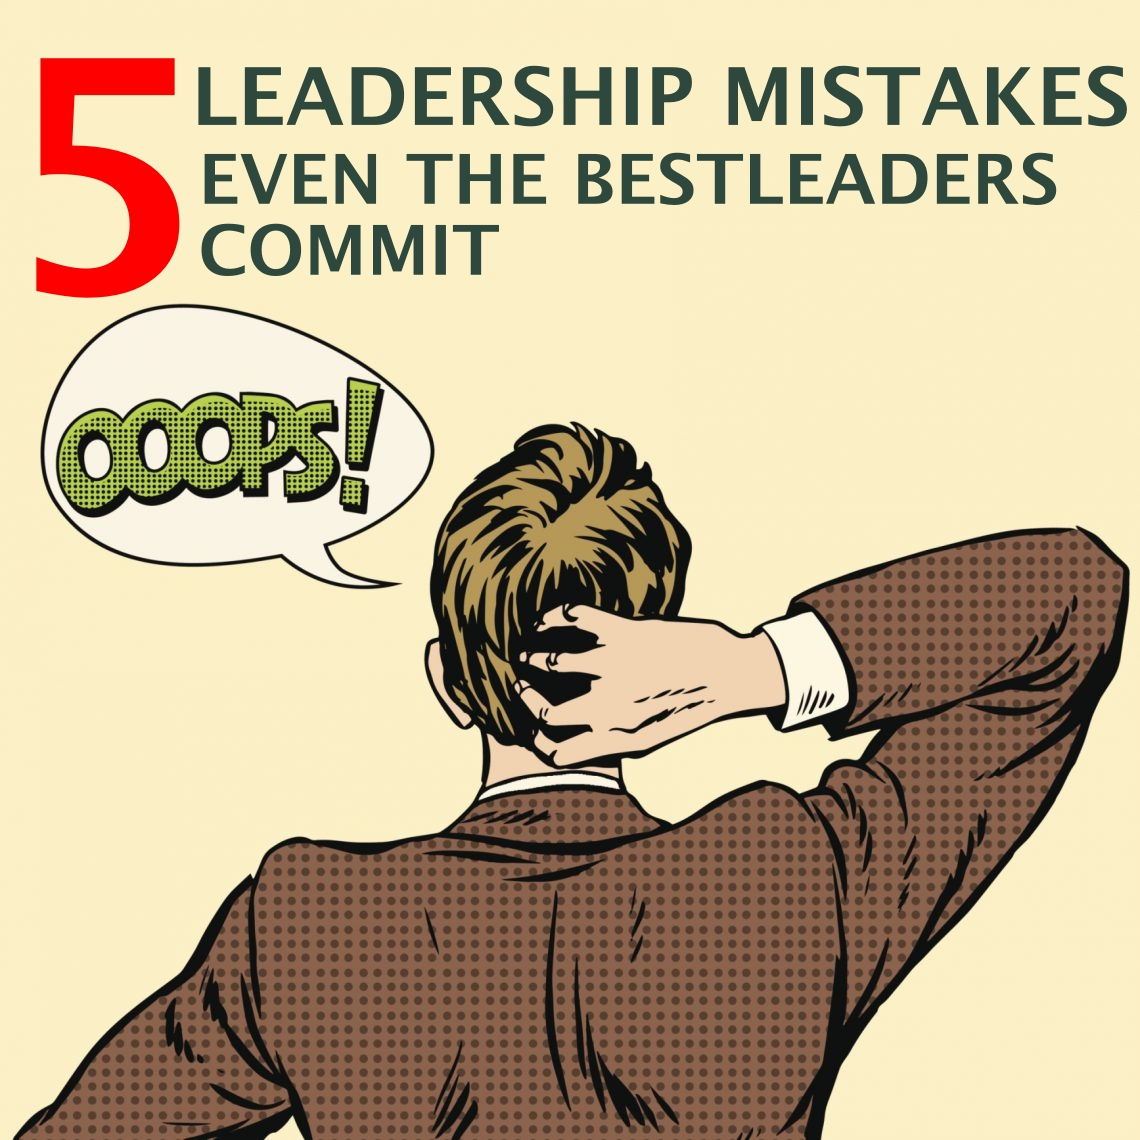 5-leadership-mistakes-1140x1140